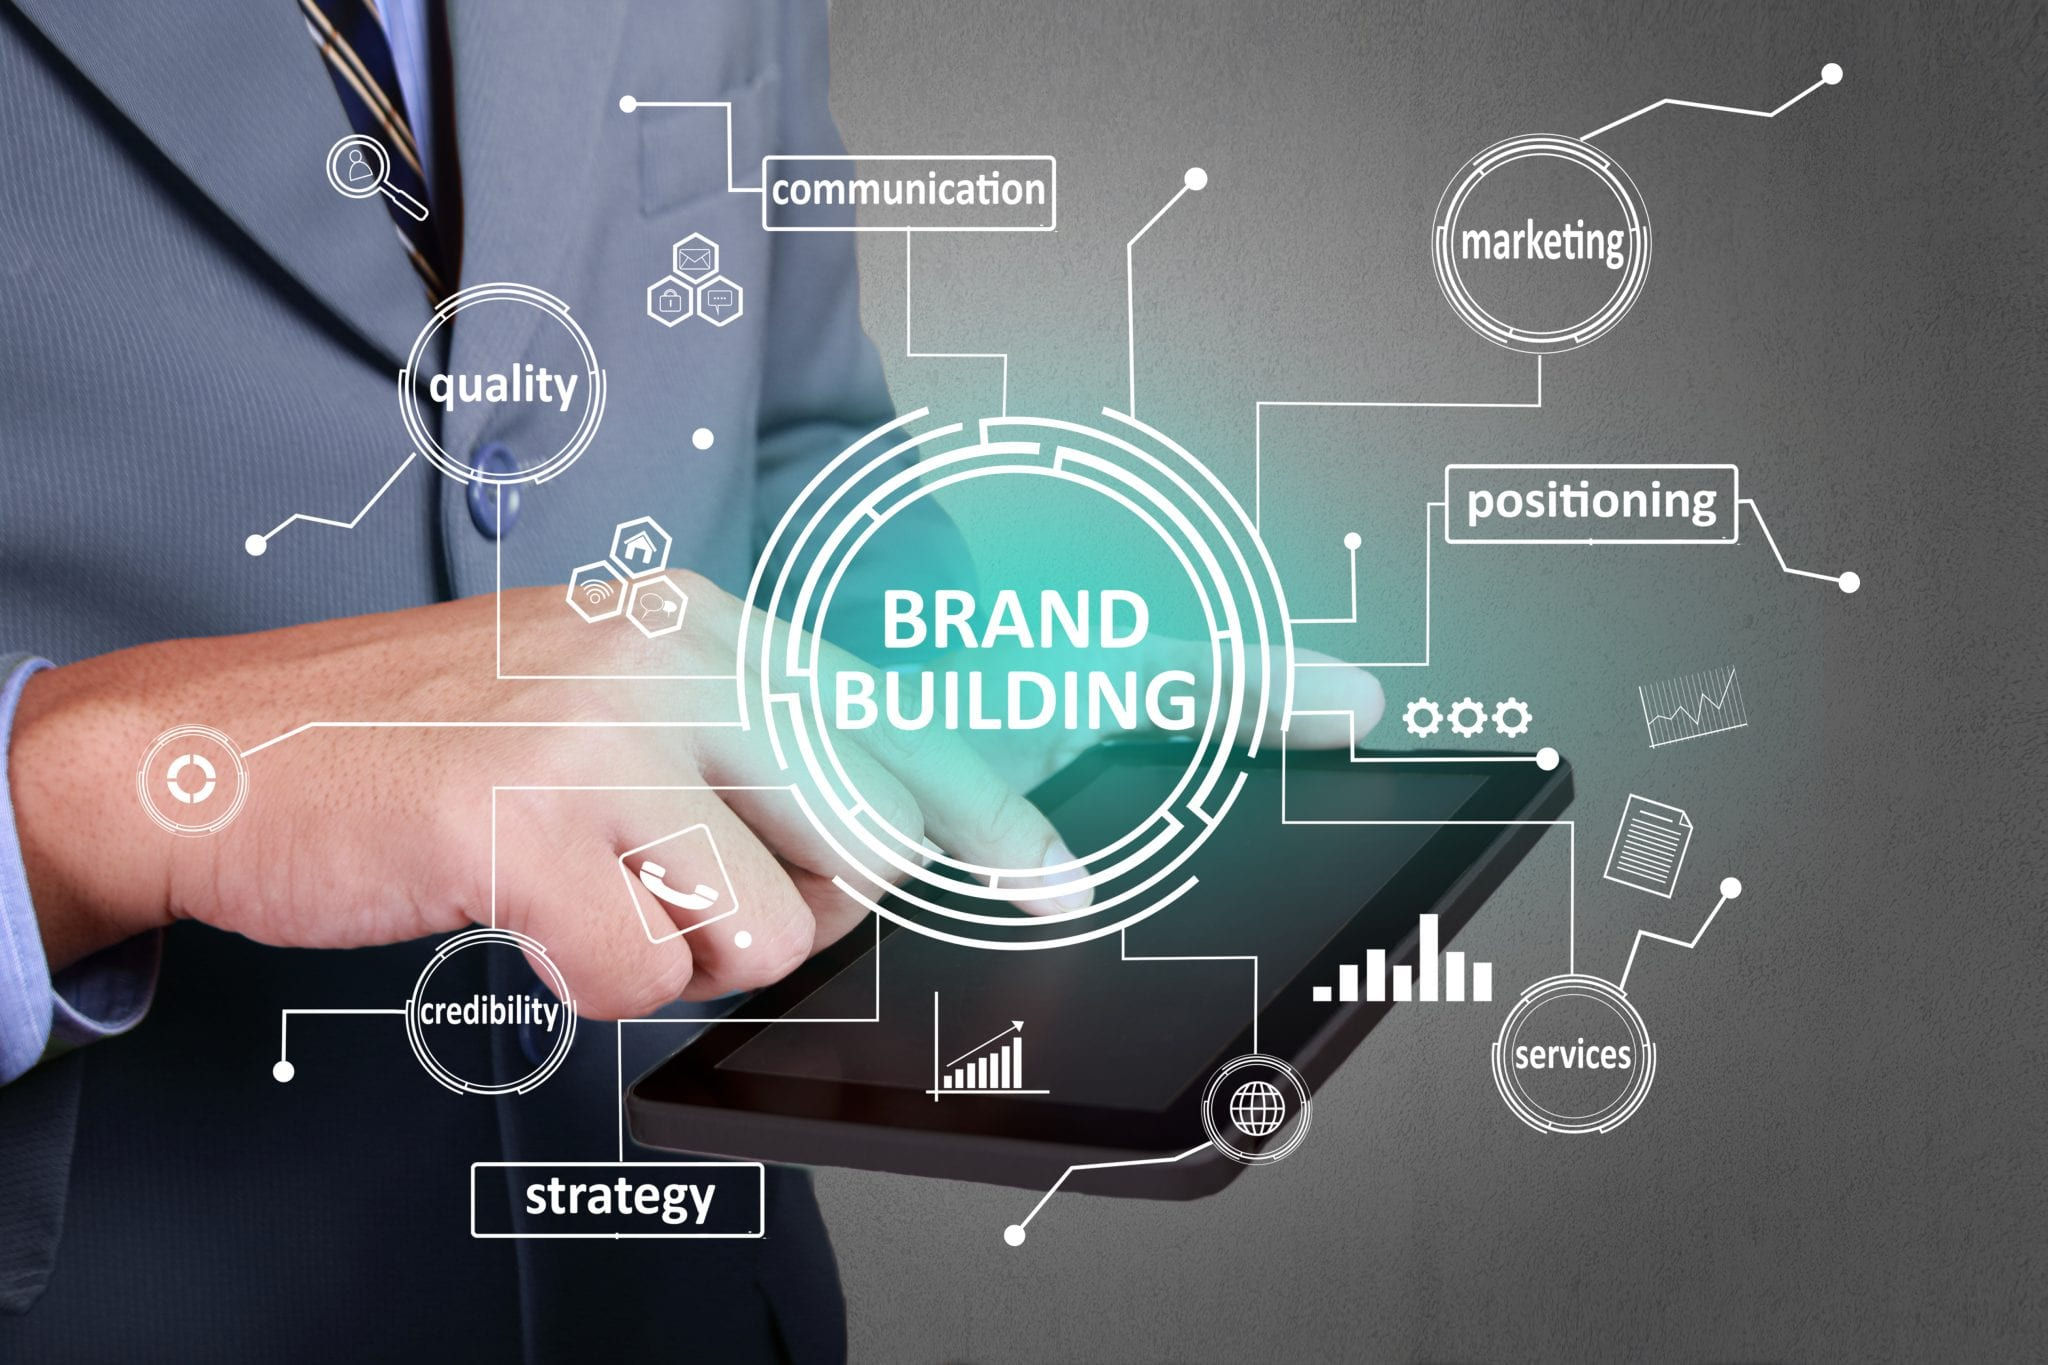 building brand recognition